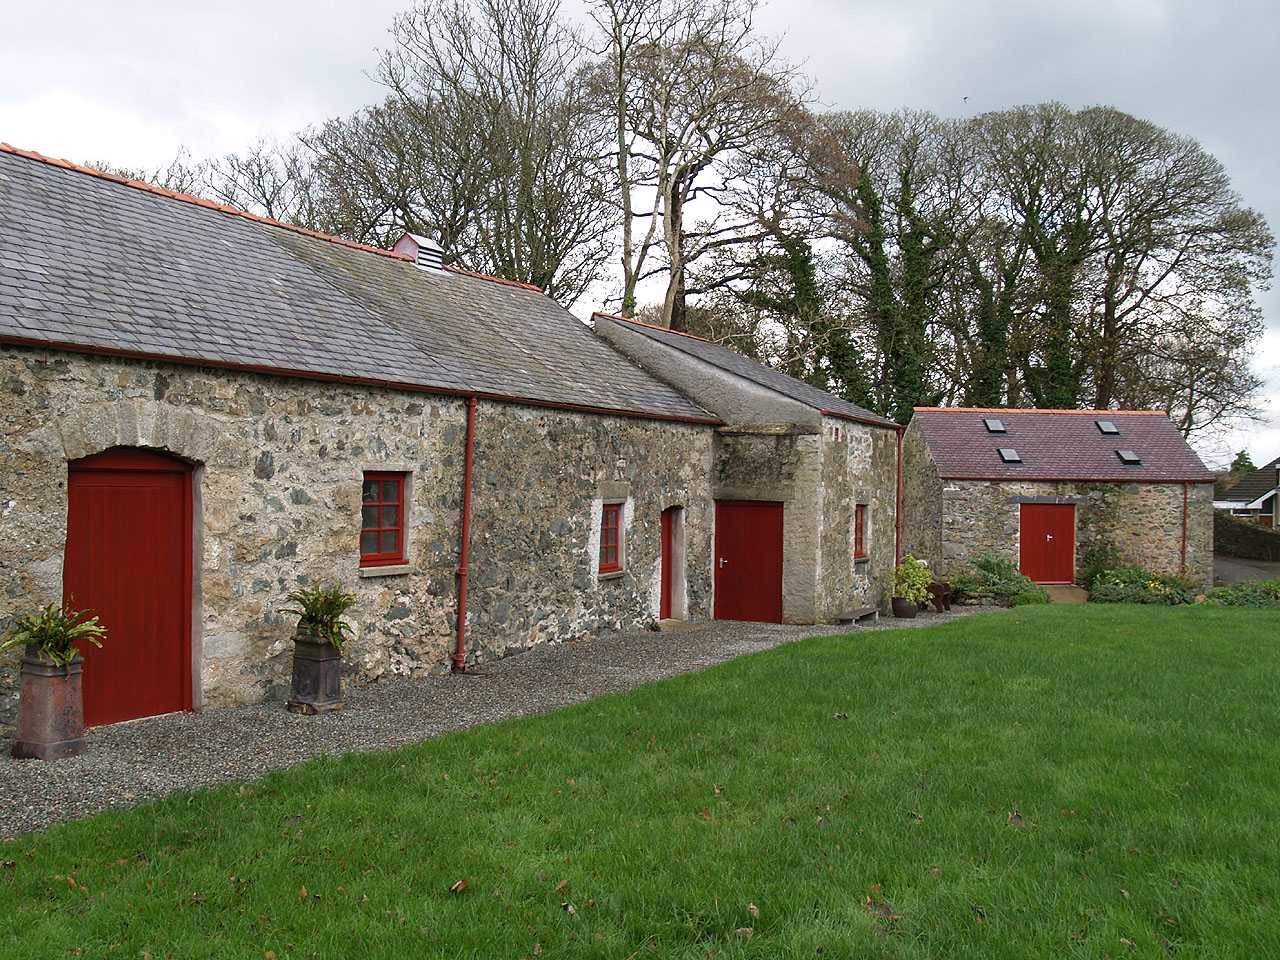 Anglesey, Llangefni Water Mill and Outbuildings